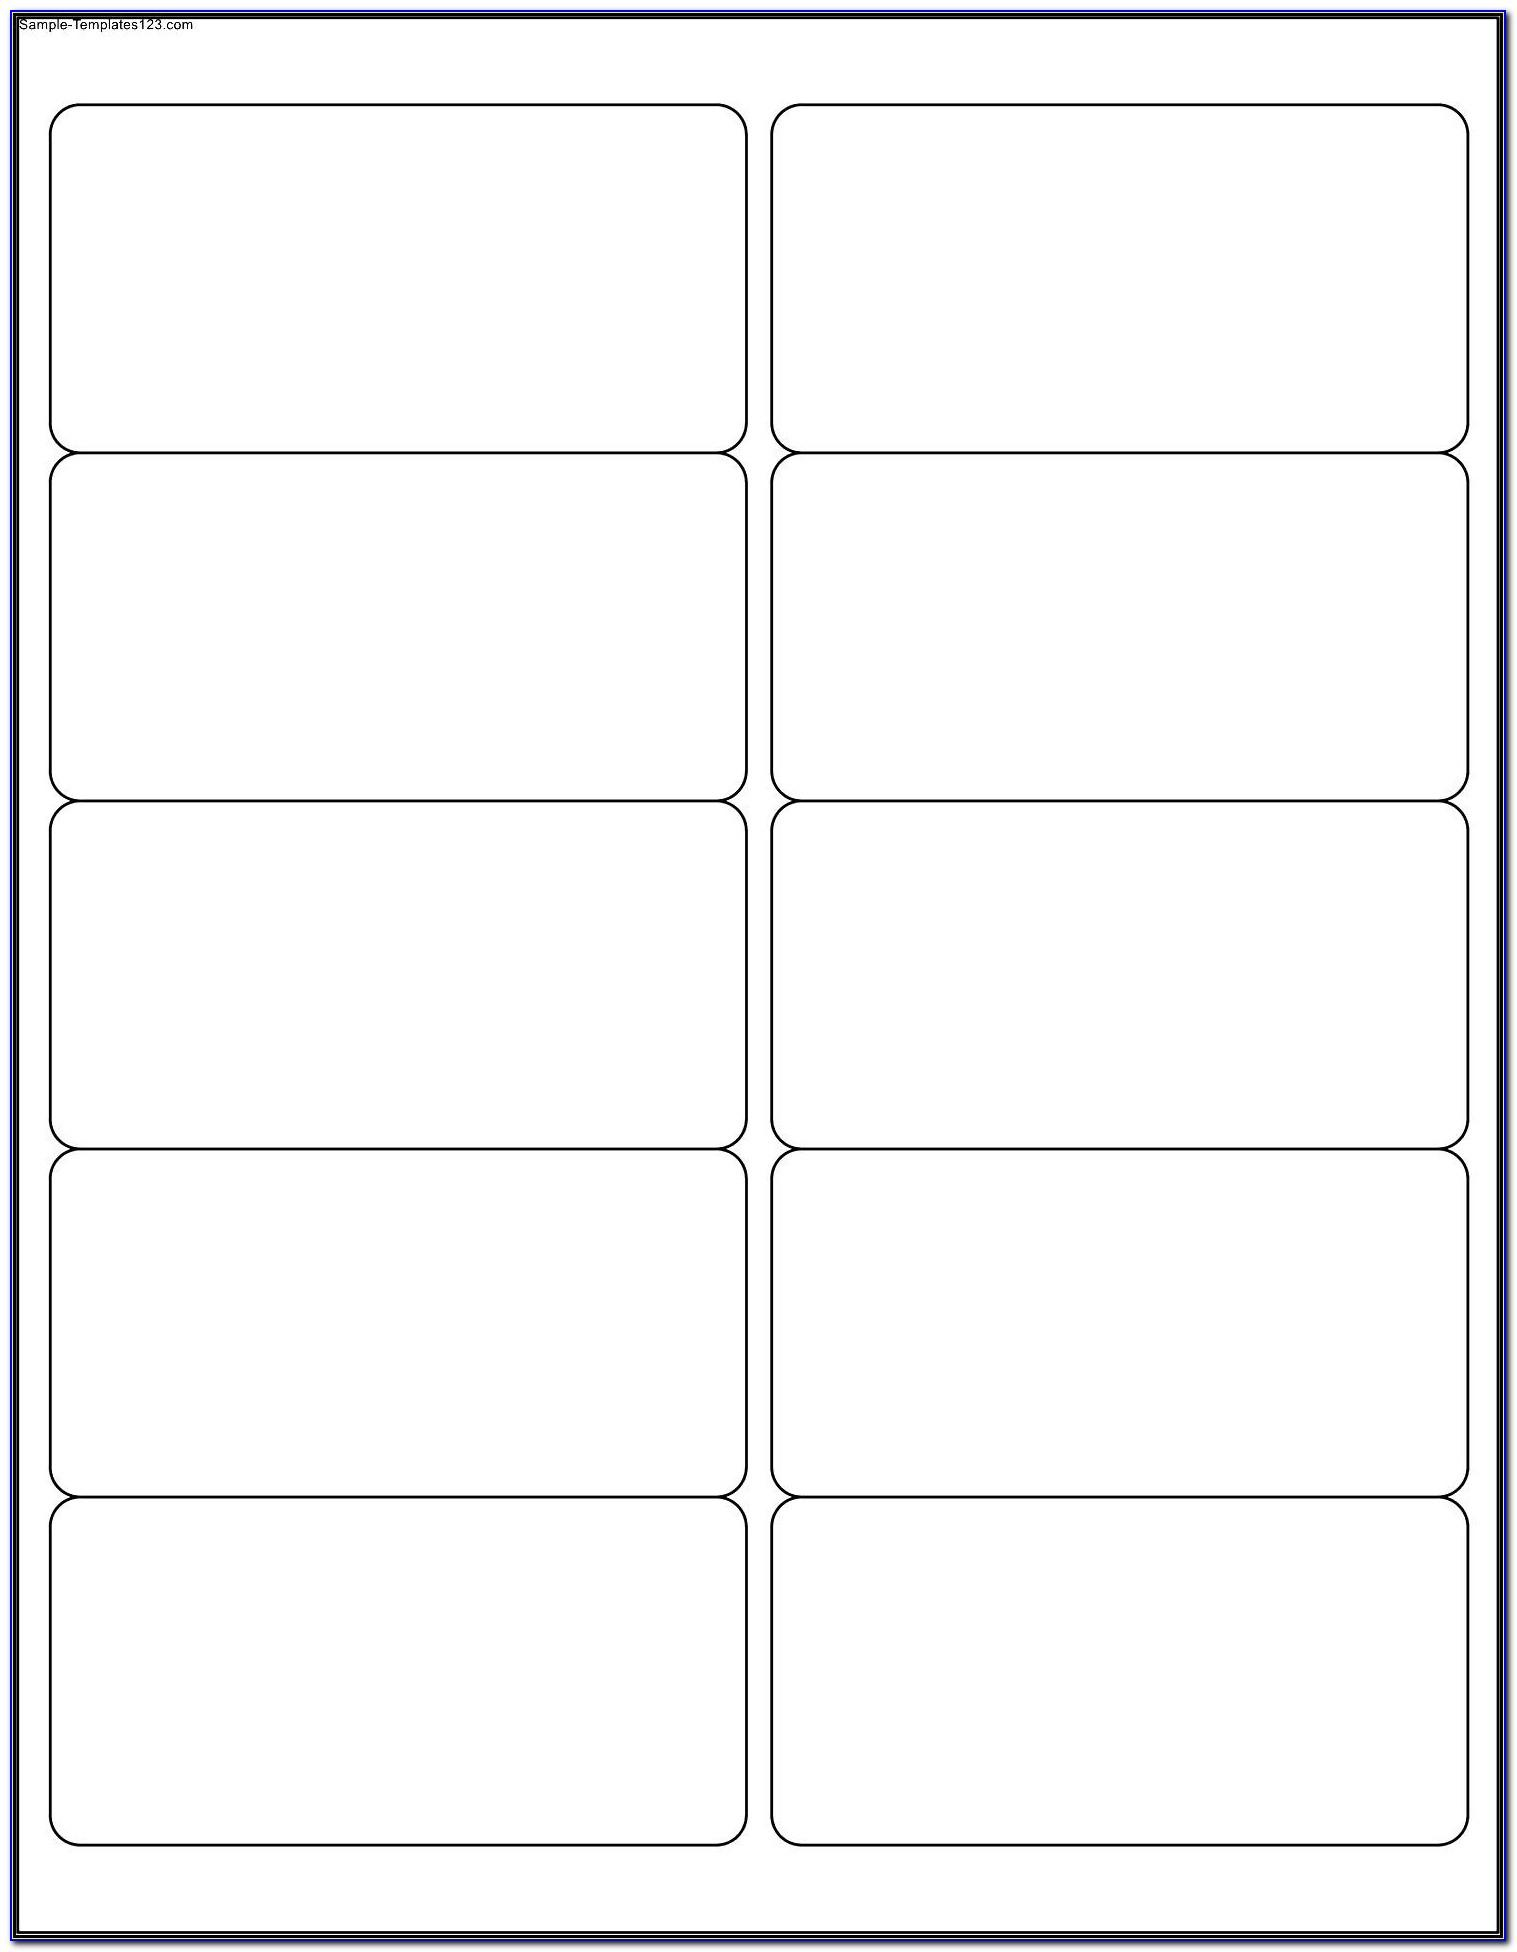 Template For Mailing Labels 30 Per Sheet